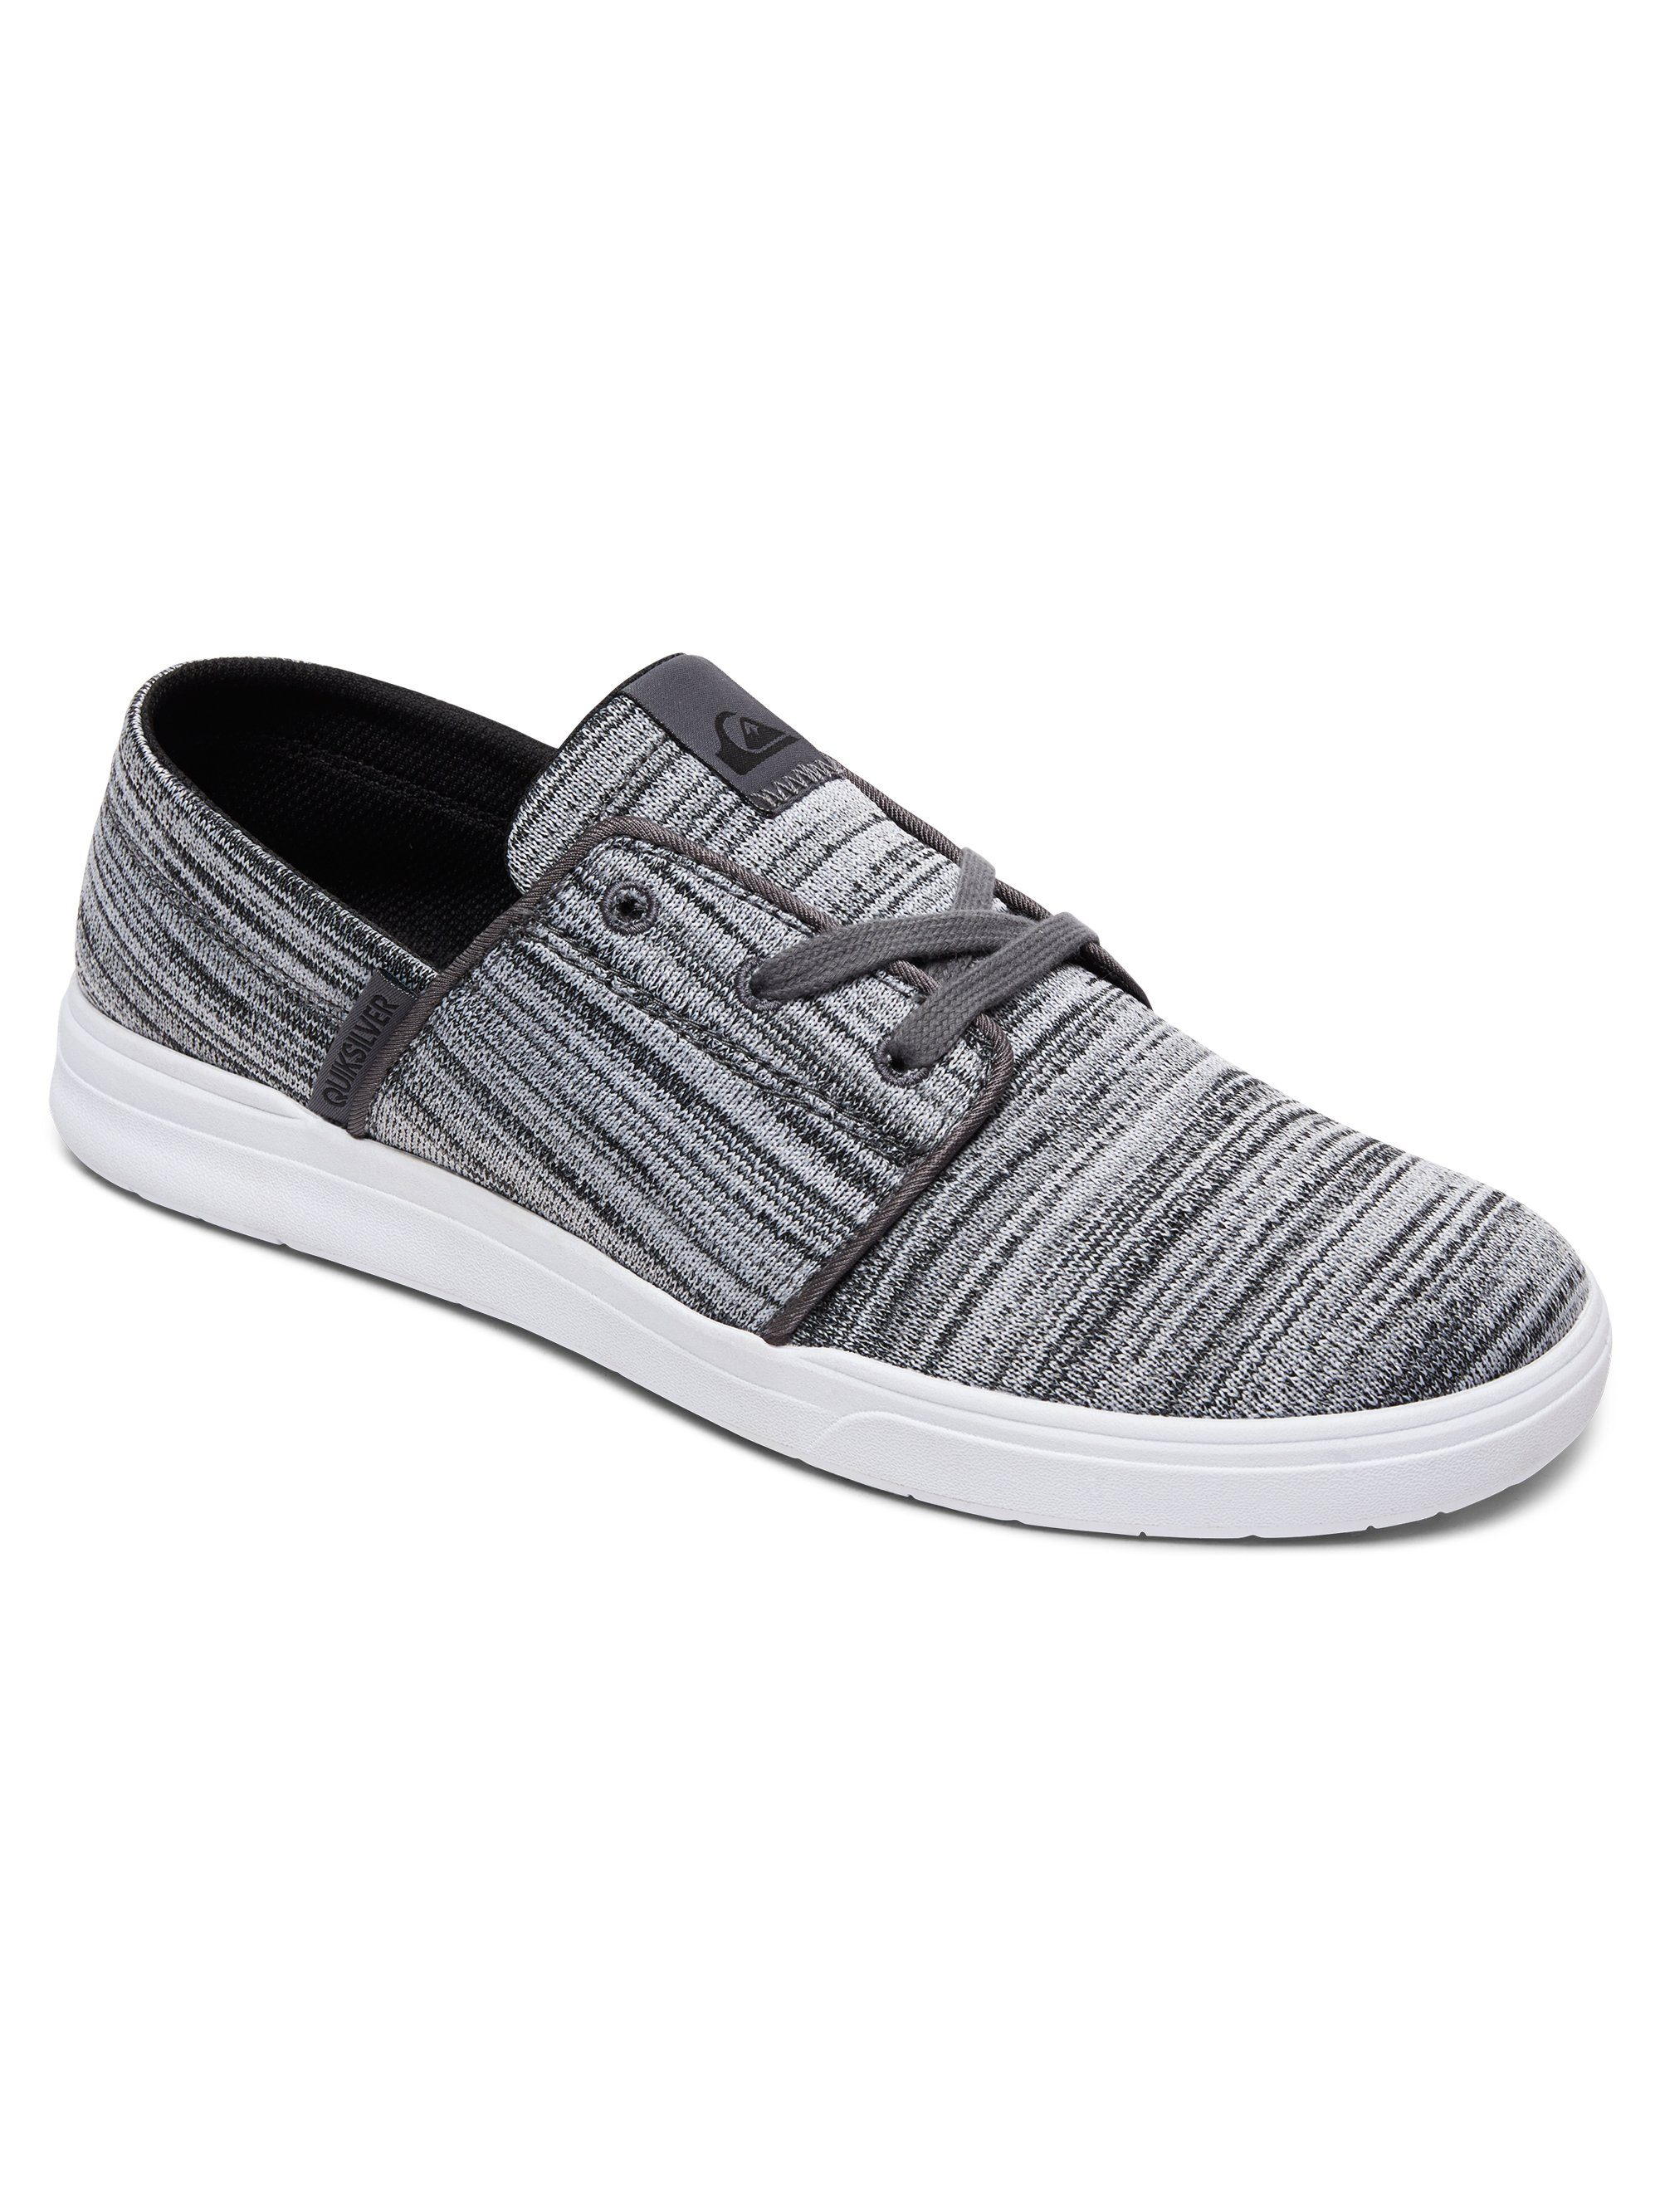 Quiksilver Schuhe Finn Lite online kaufen  Grey#ft5_slash#grey#ft5_slash#white